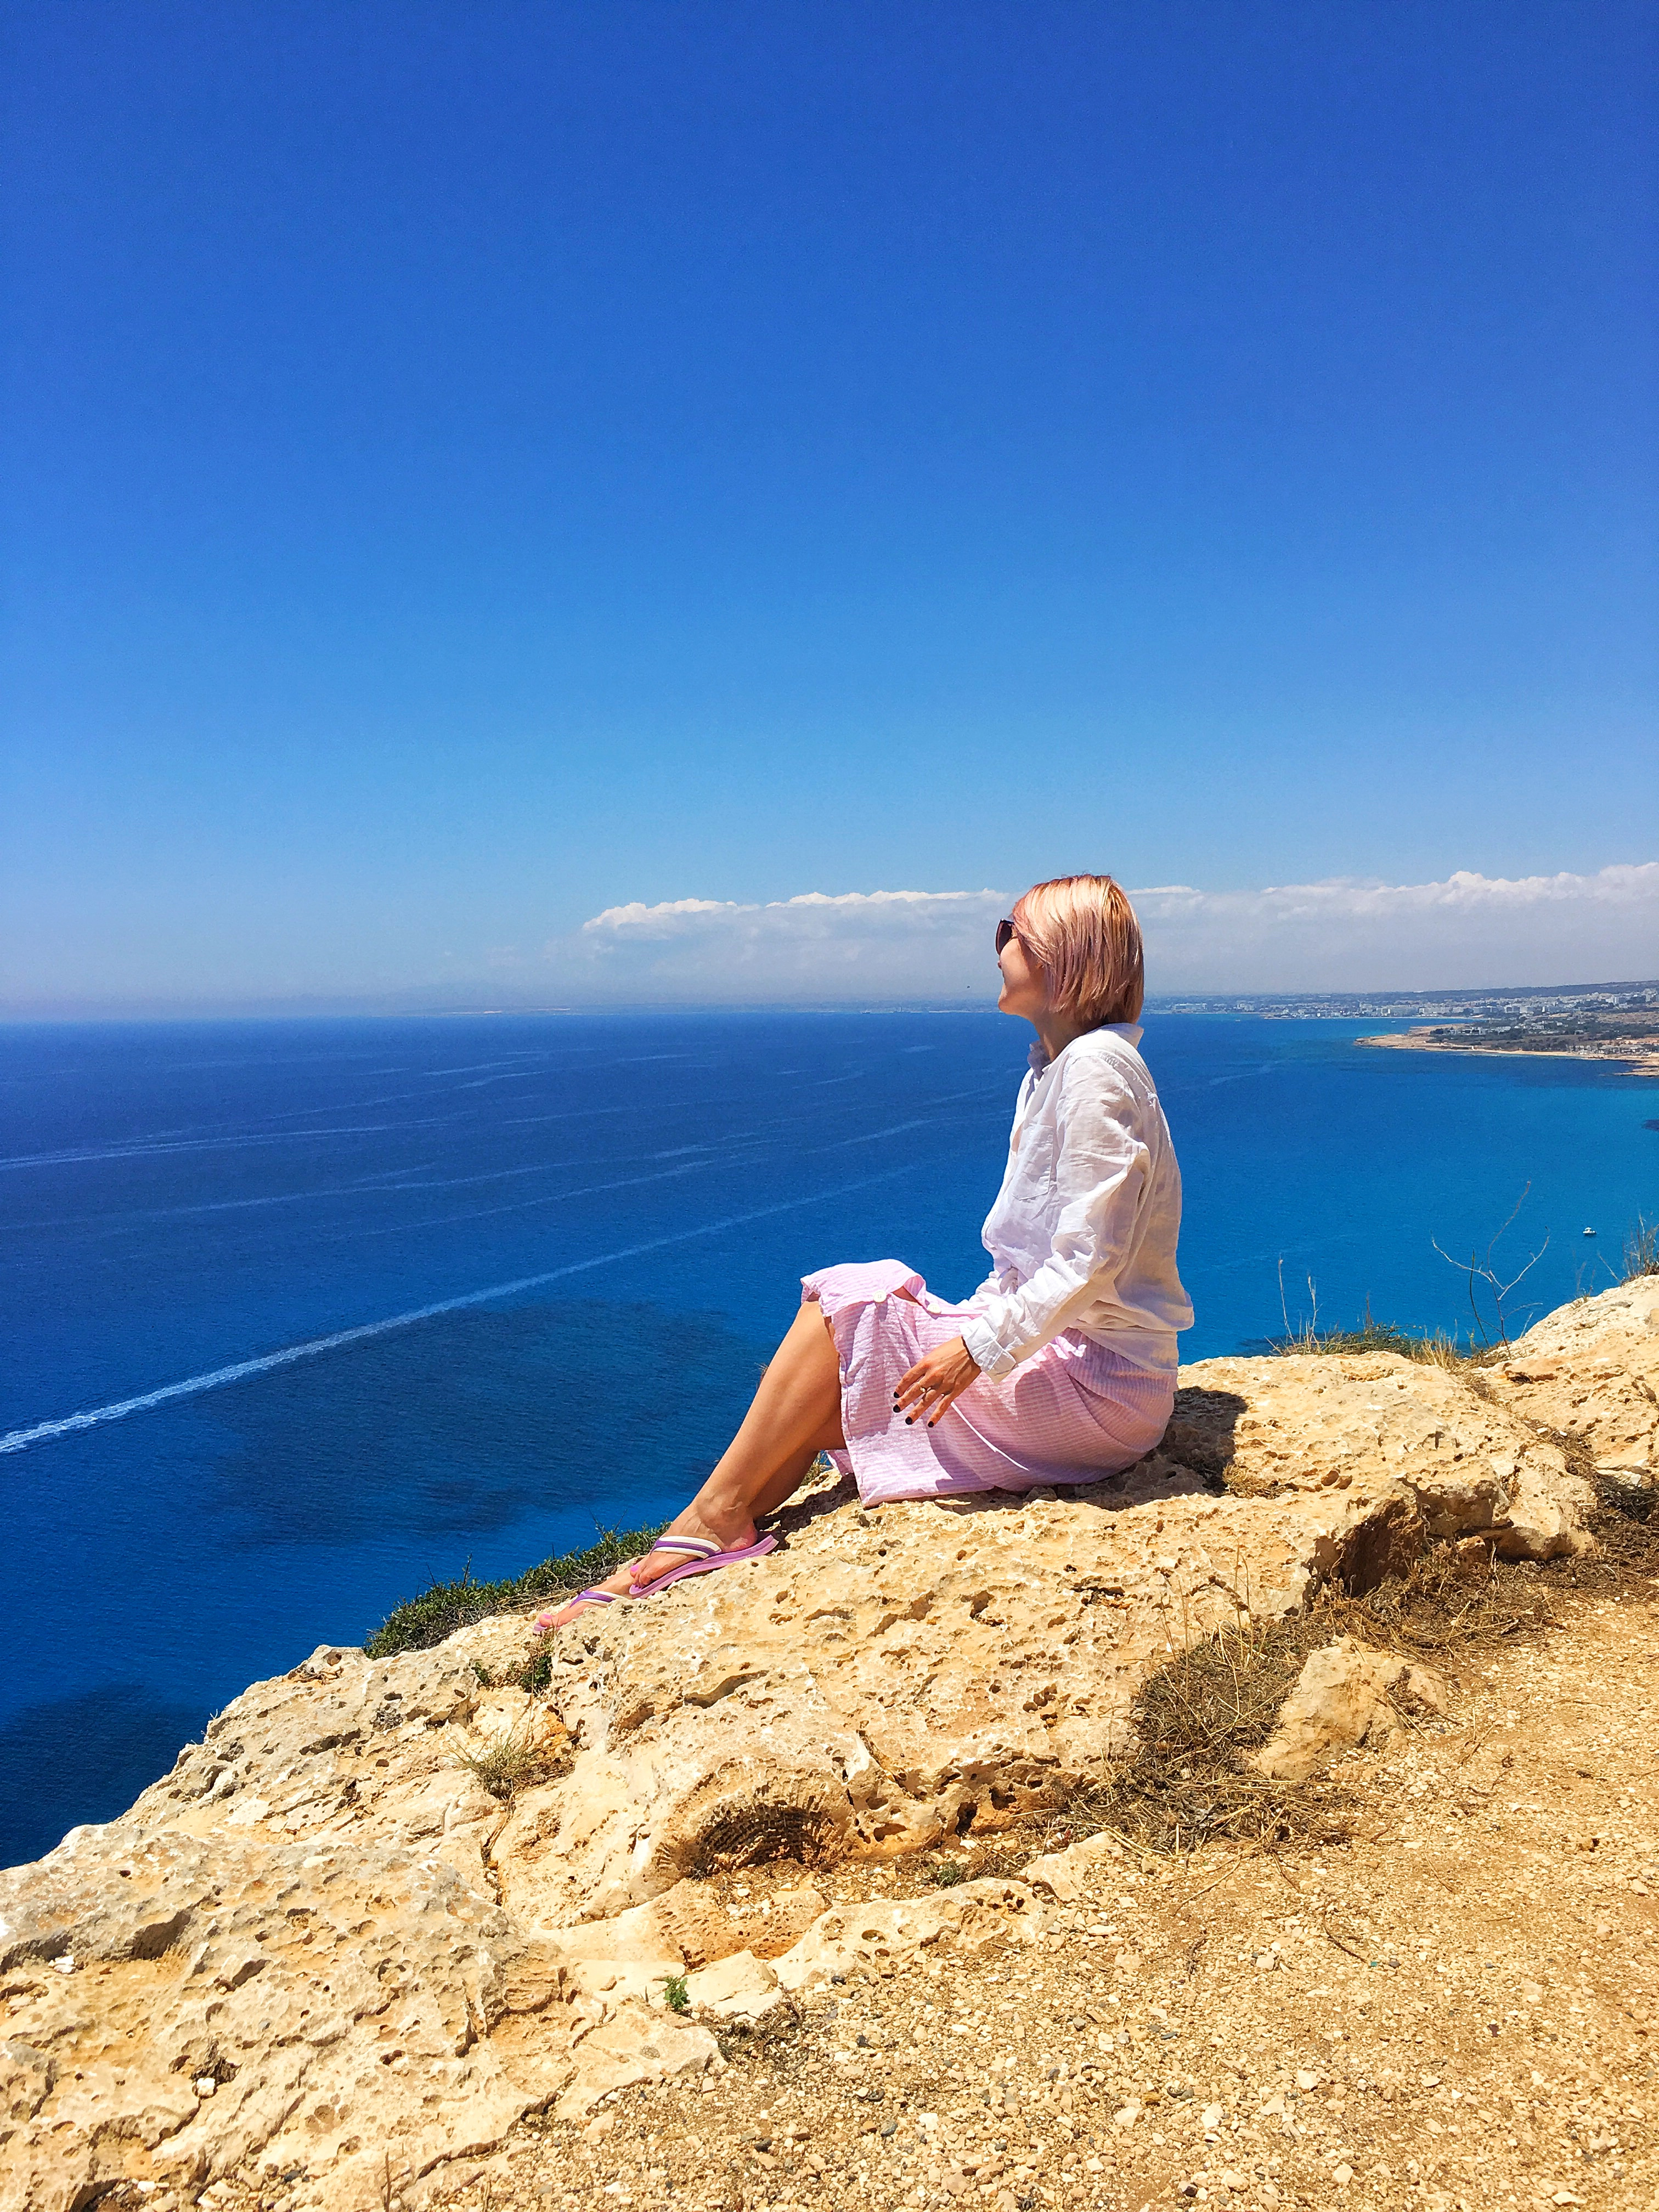 my top 5 Instagrammable places in Cyprus